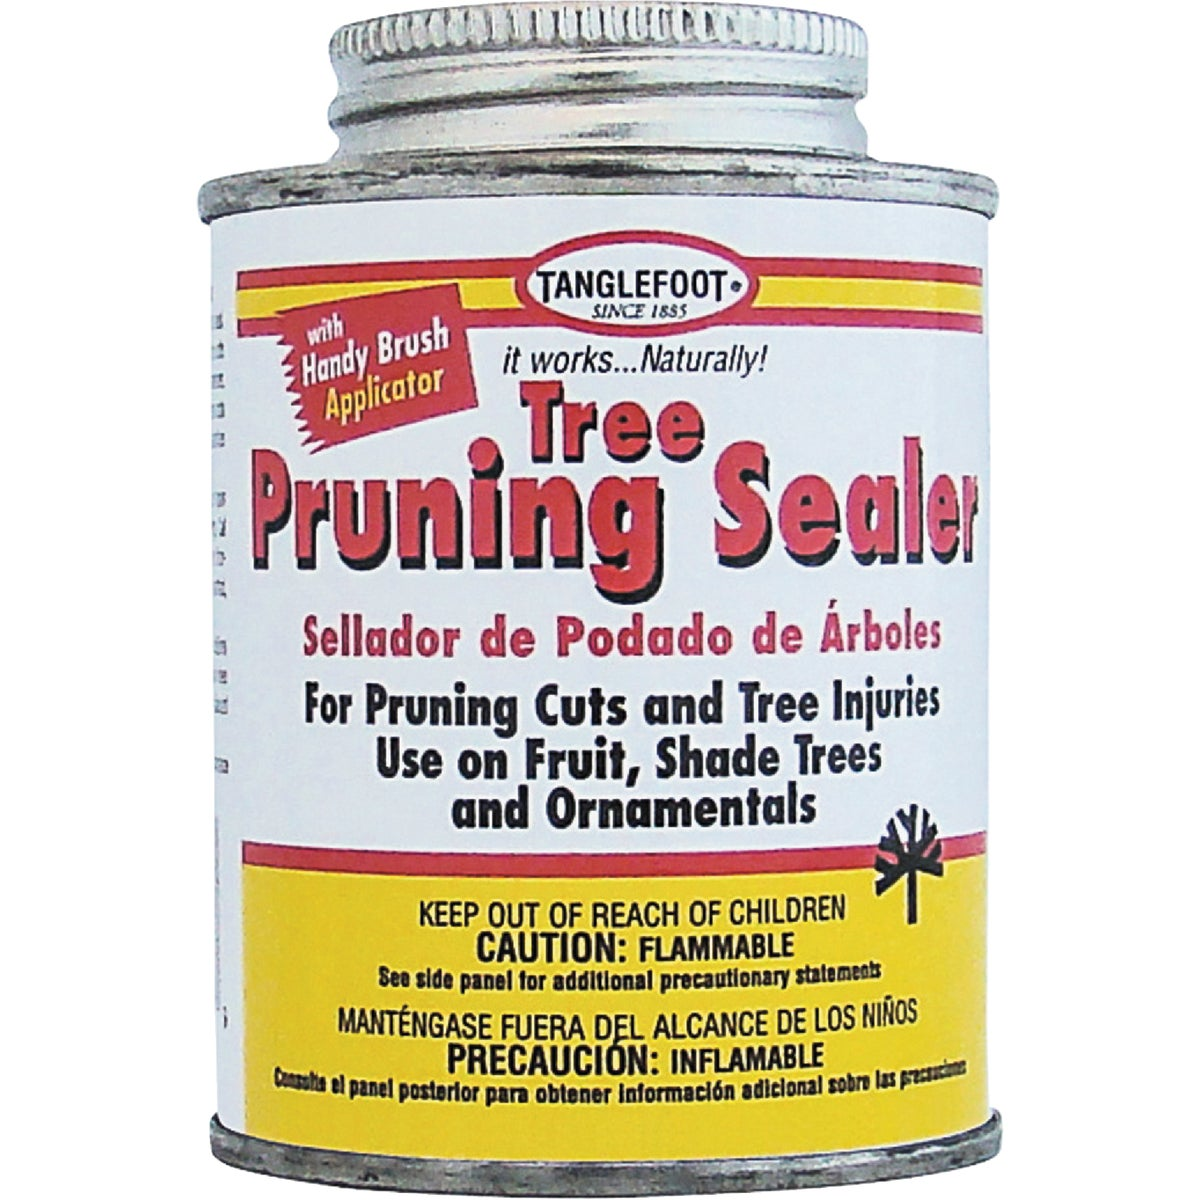 8OZ PRUNING PAINT - 300000564 by Contech Enterprises